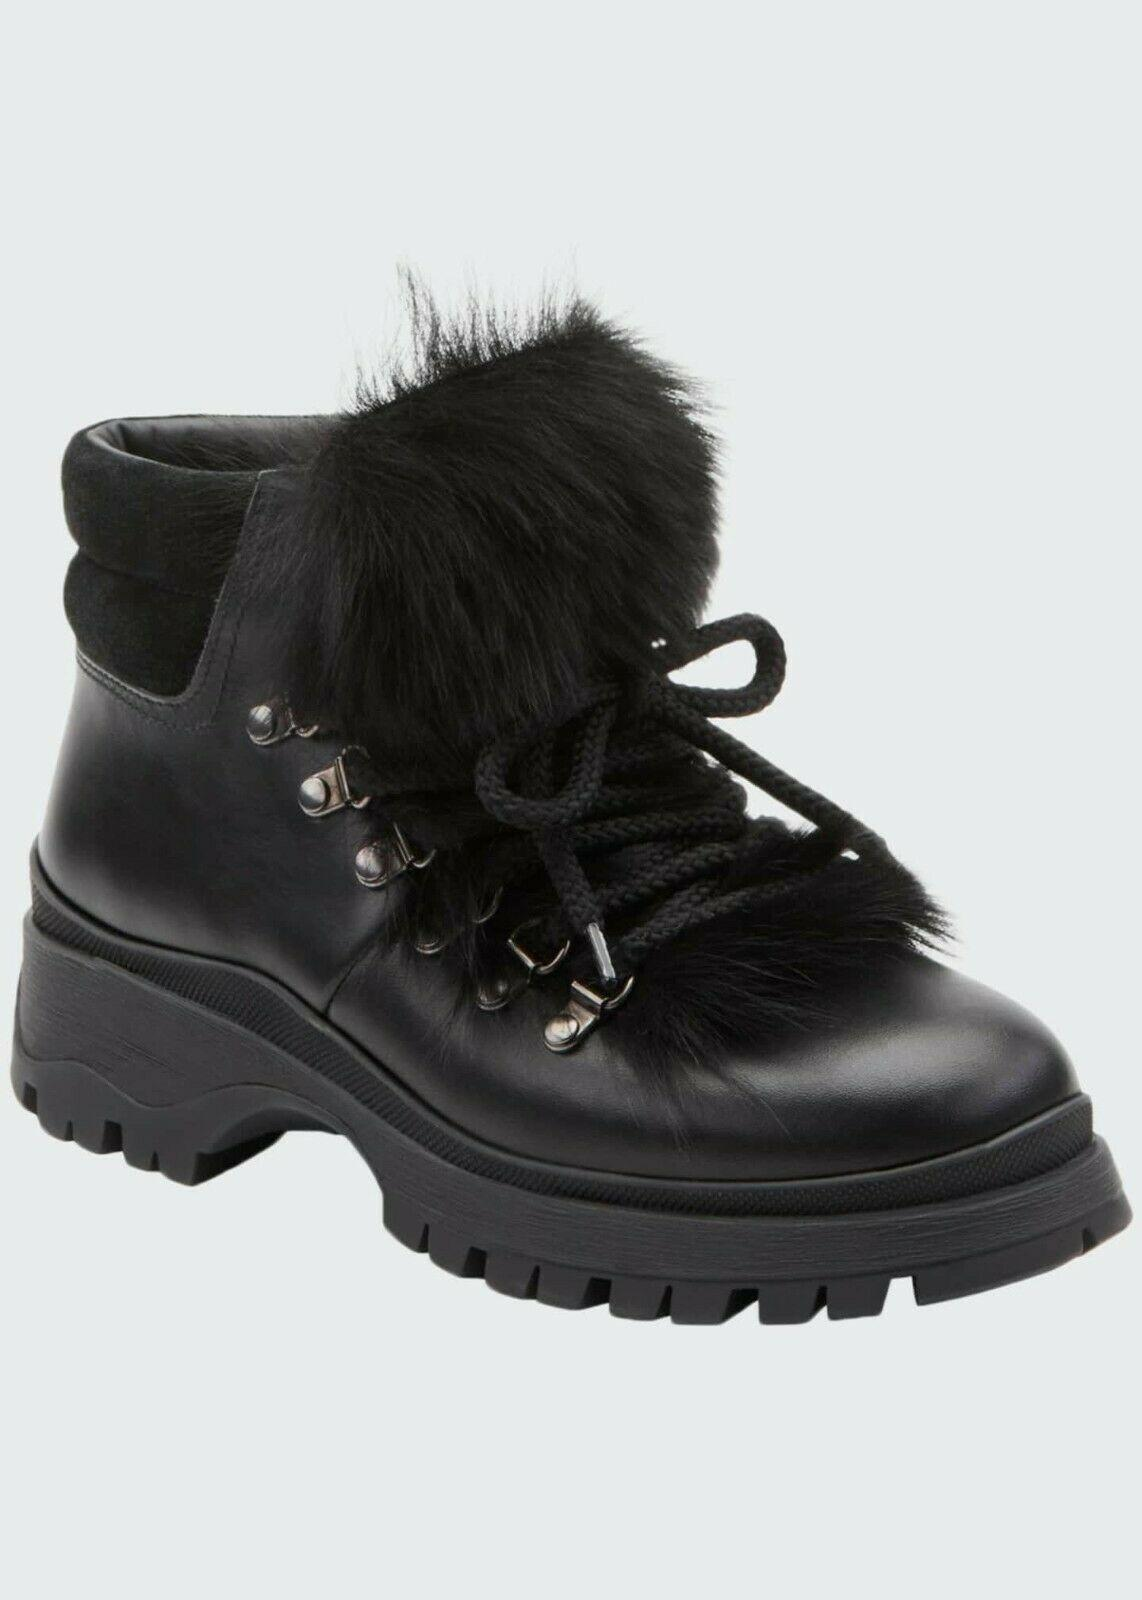 $990 Prada Black Lug-Sole Hiker Boots Shearling Fur Lined Lace Up Booties 37